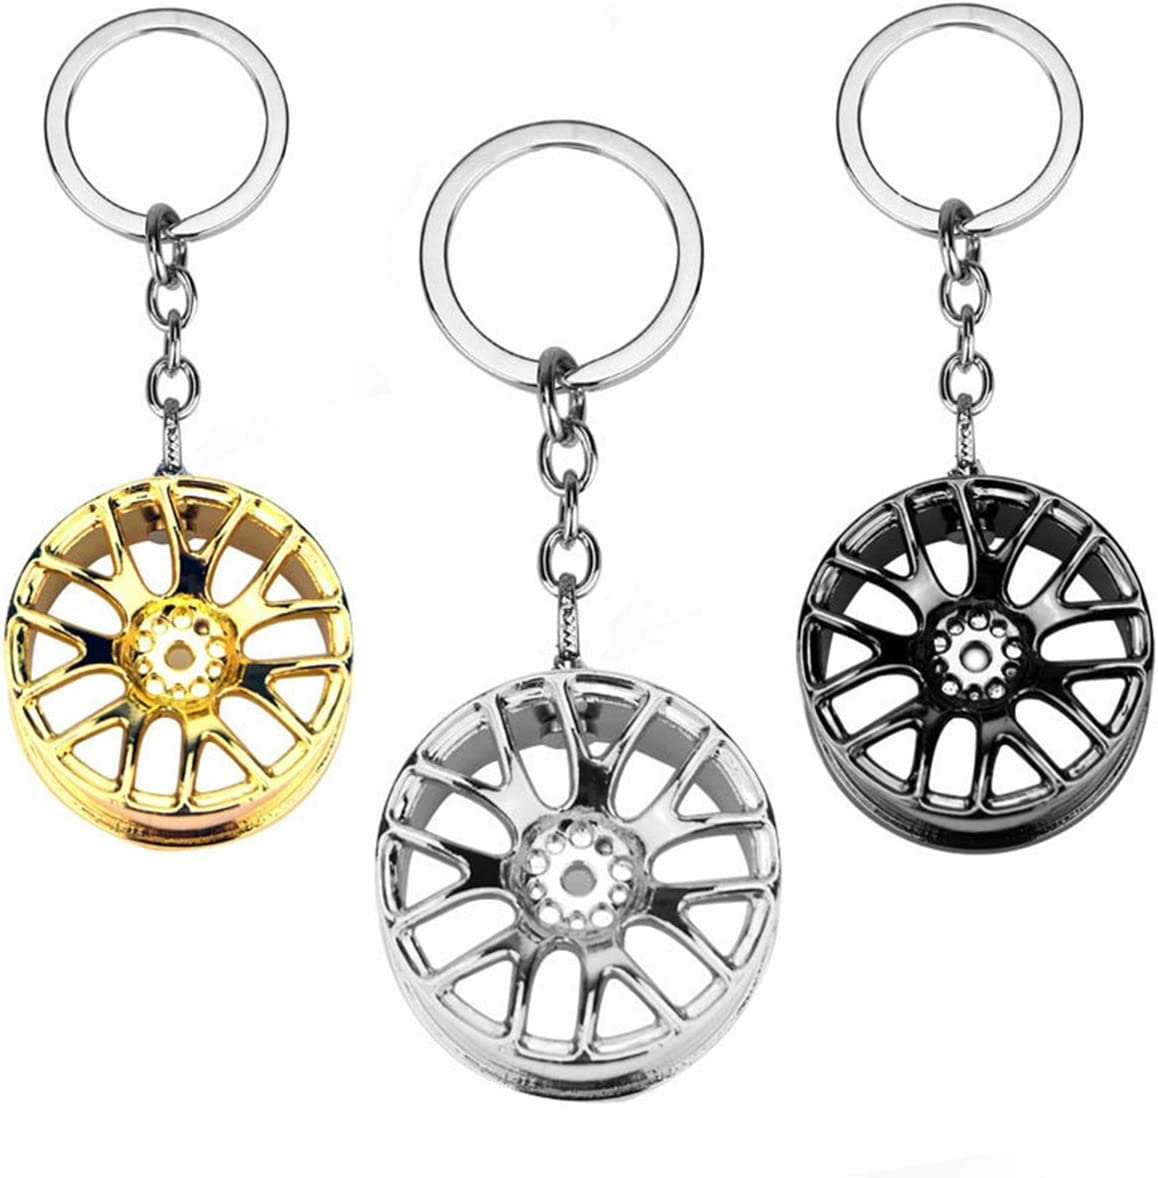 Gun Black Auto Tire Key Chain Key Ring Auto Wheel Rim Keychain Keyfob Car  Accessories Interior Accessories drsuneettayal Automotive